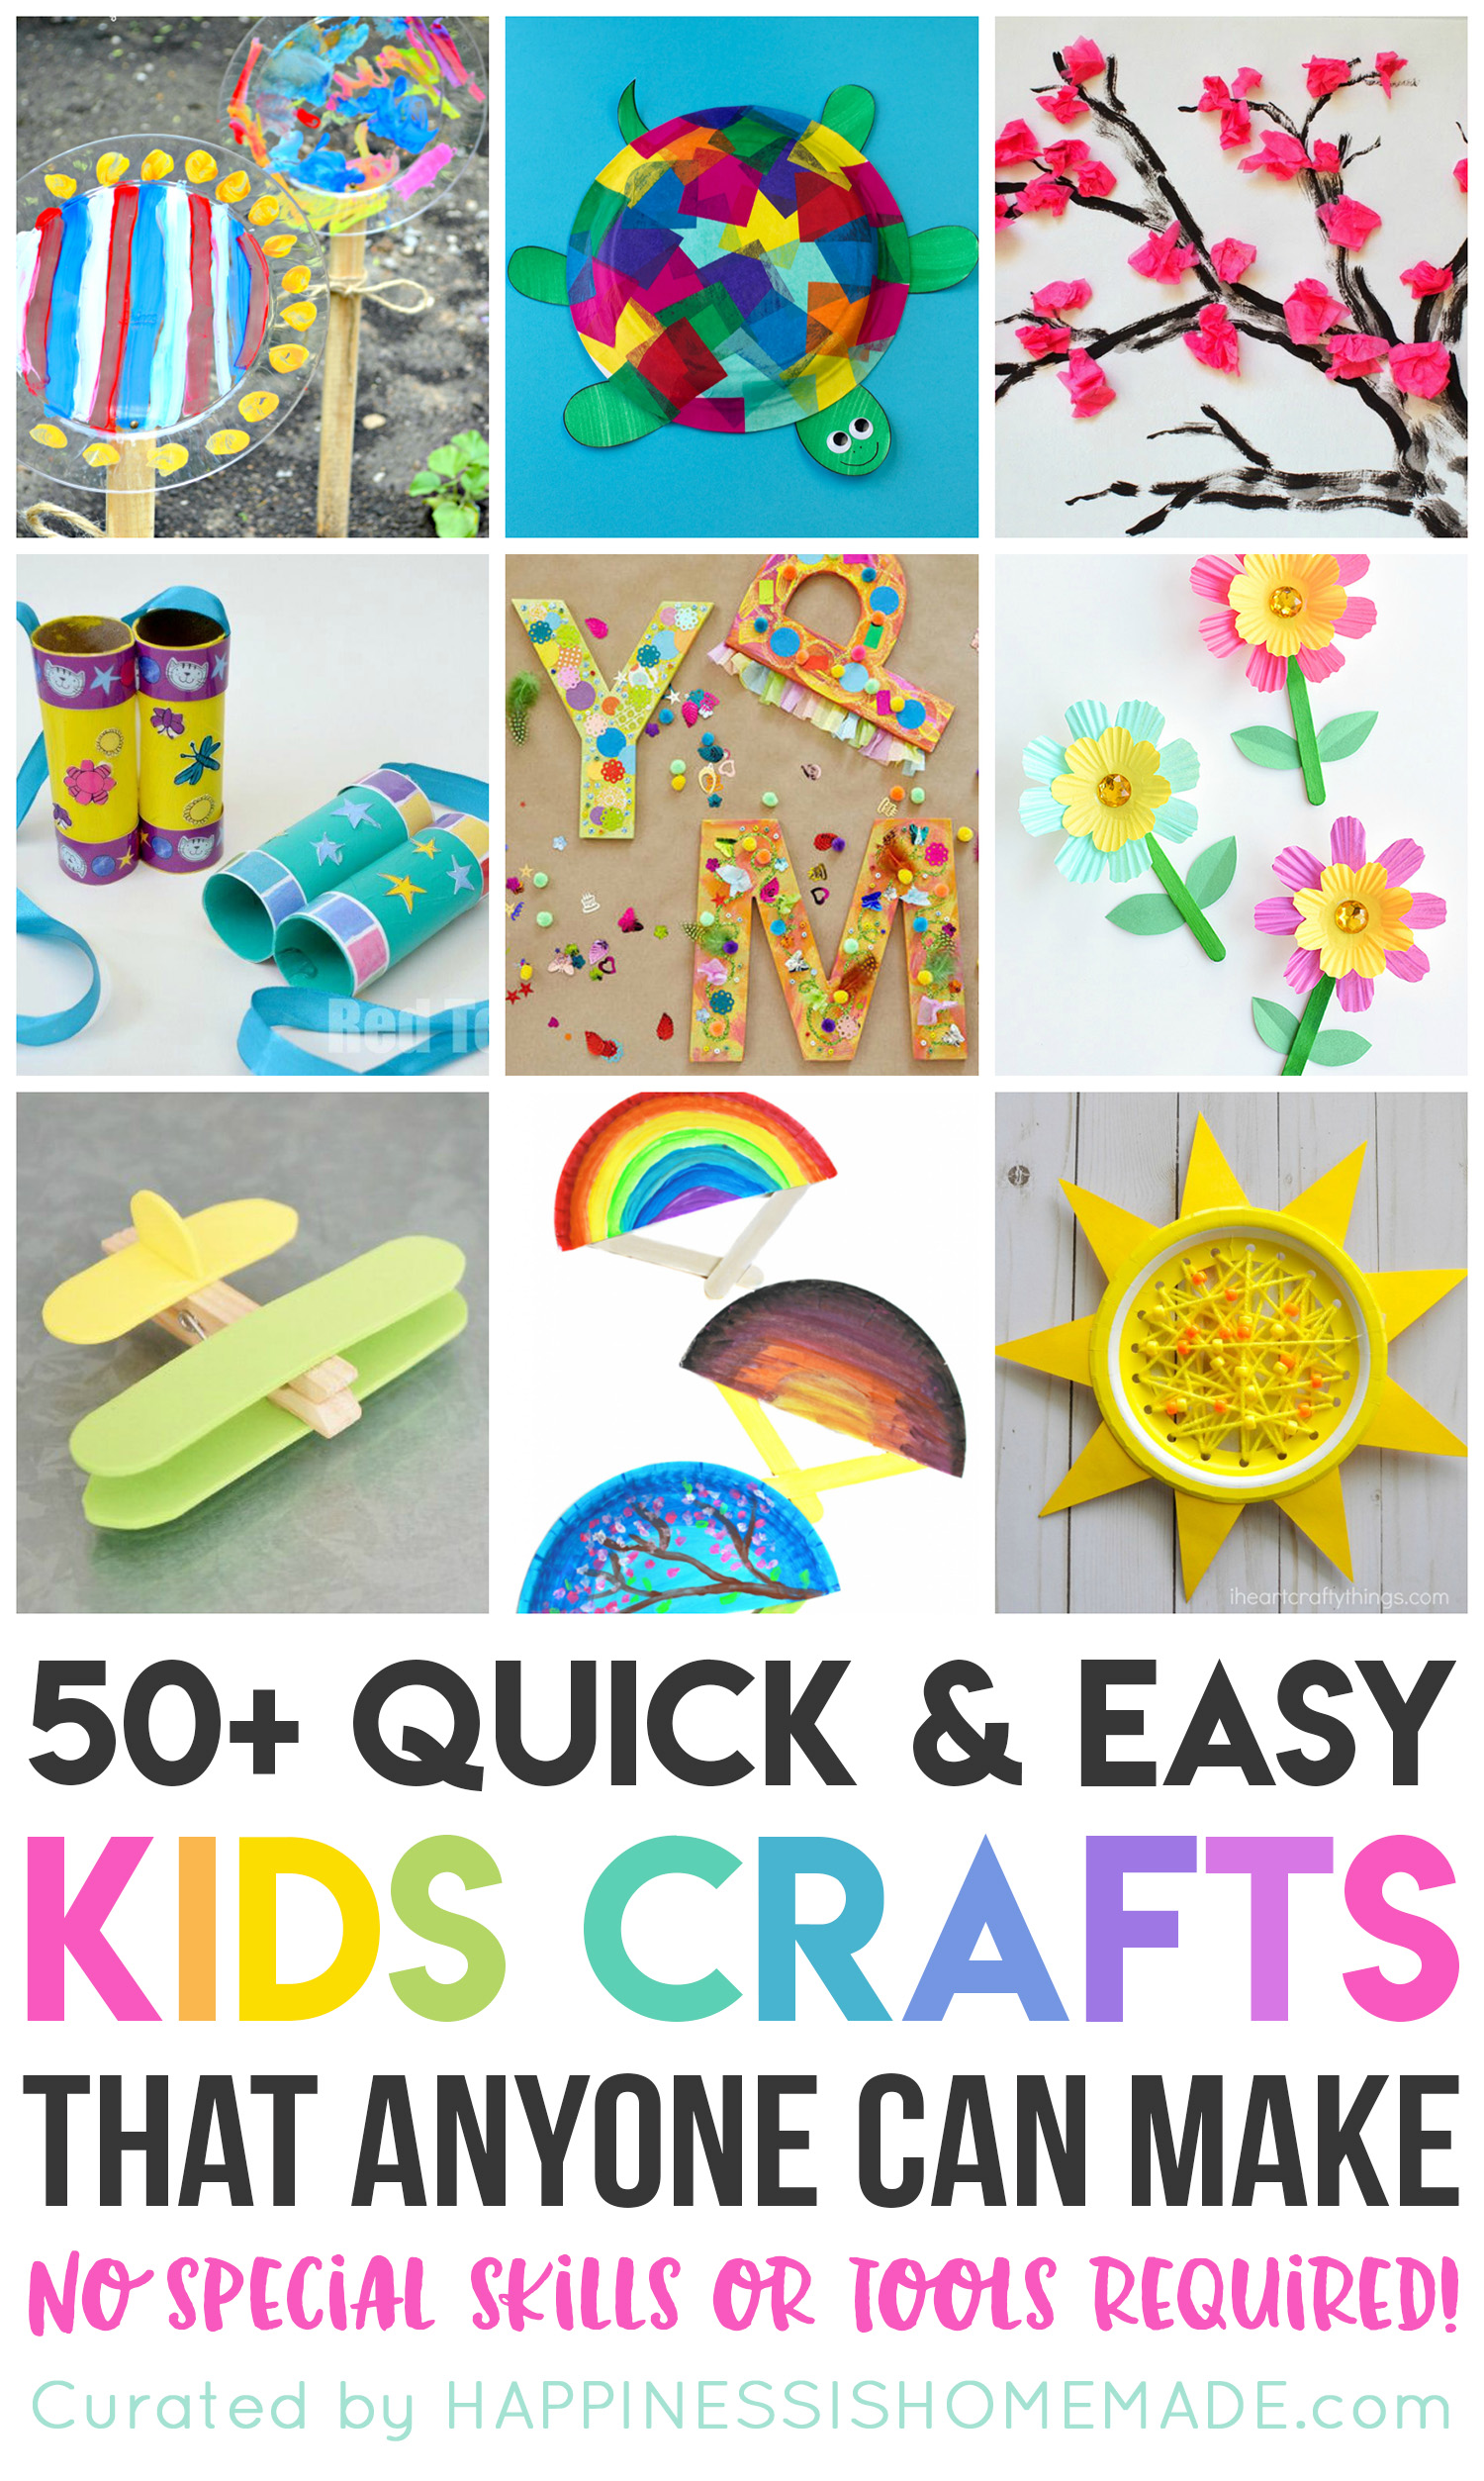 Easy Winter Kids Crafts That Anyone Can Make Happiness Is Homemade